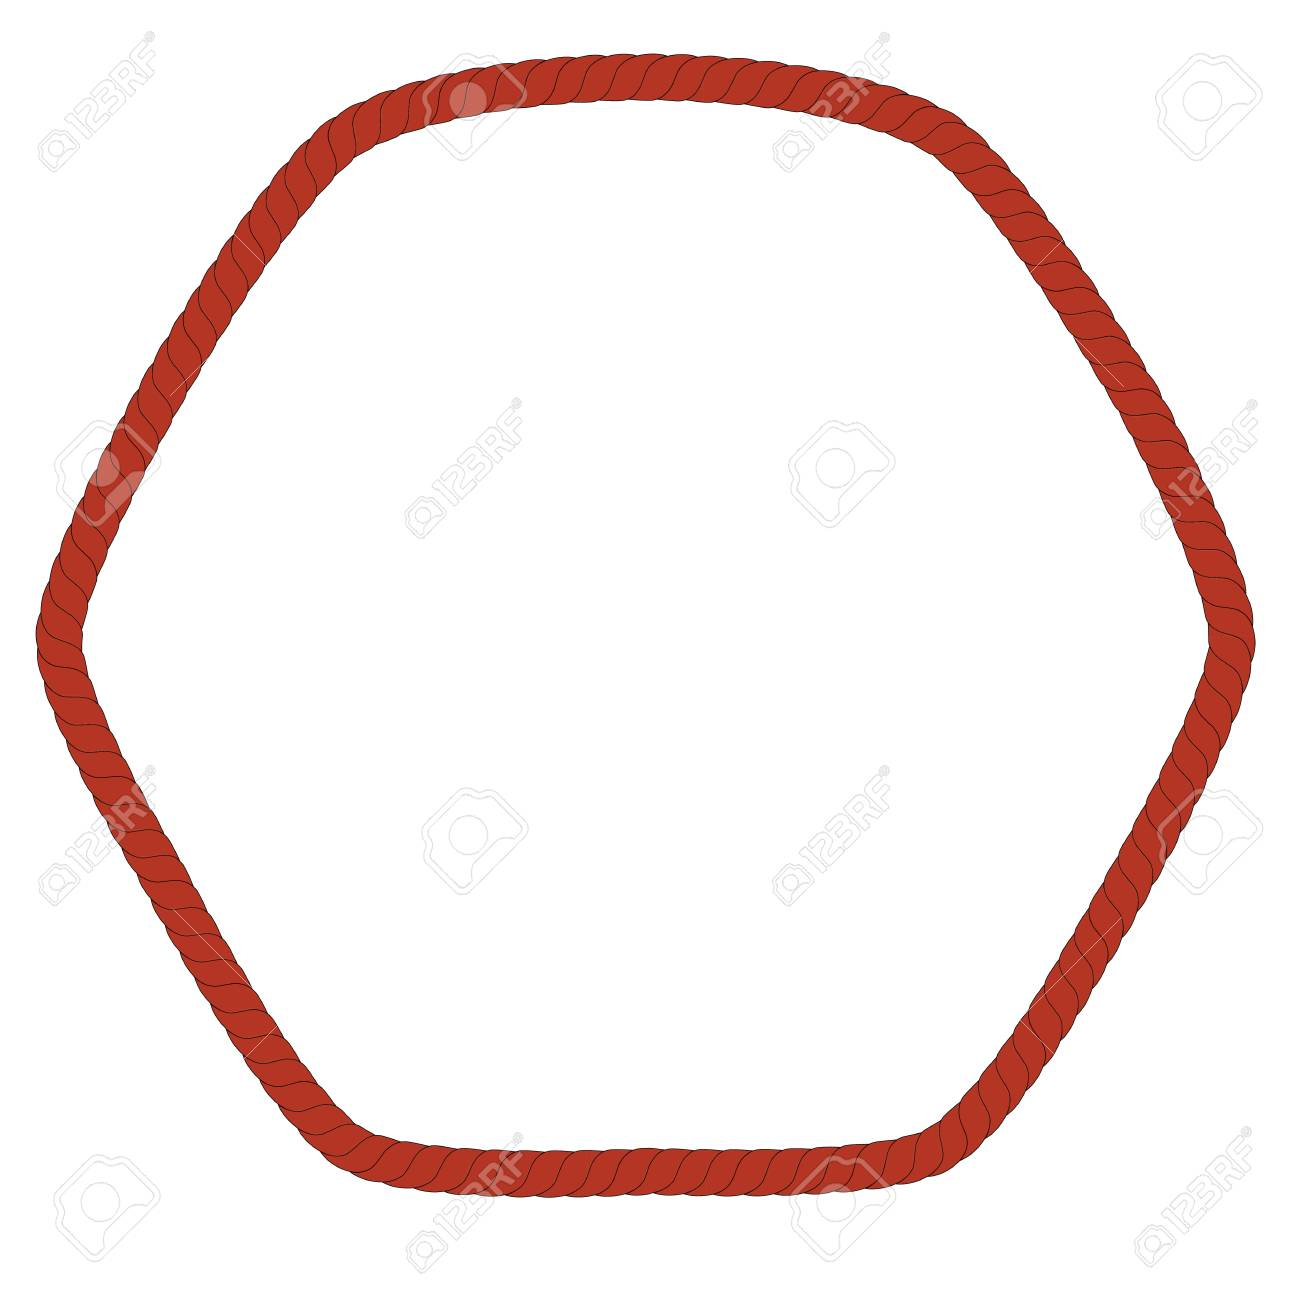 Hexagon Frame From Brown Rope For Your Element Design At Transparent ...